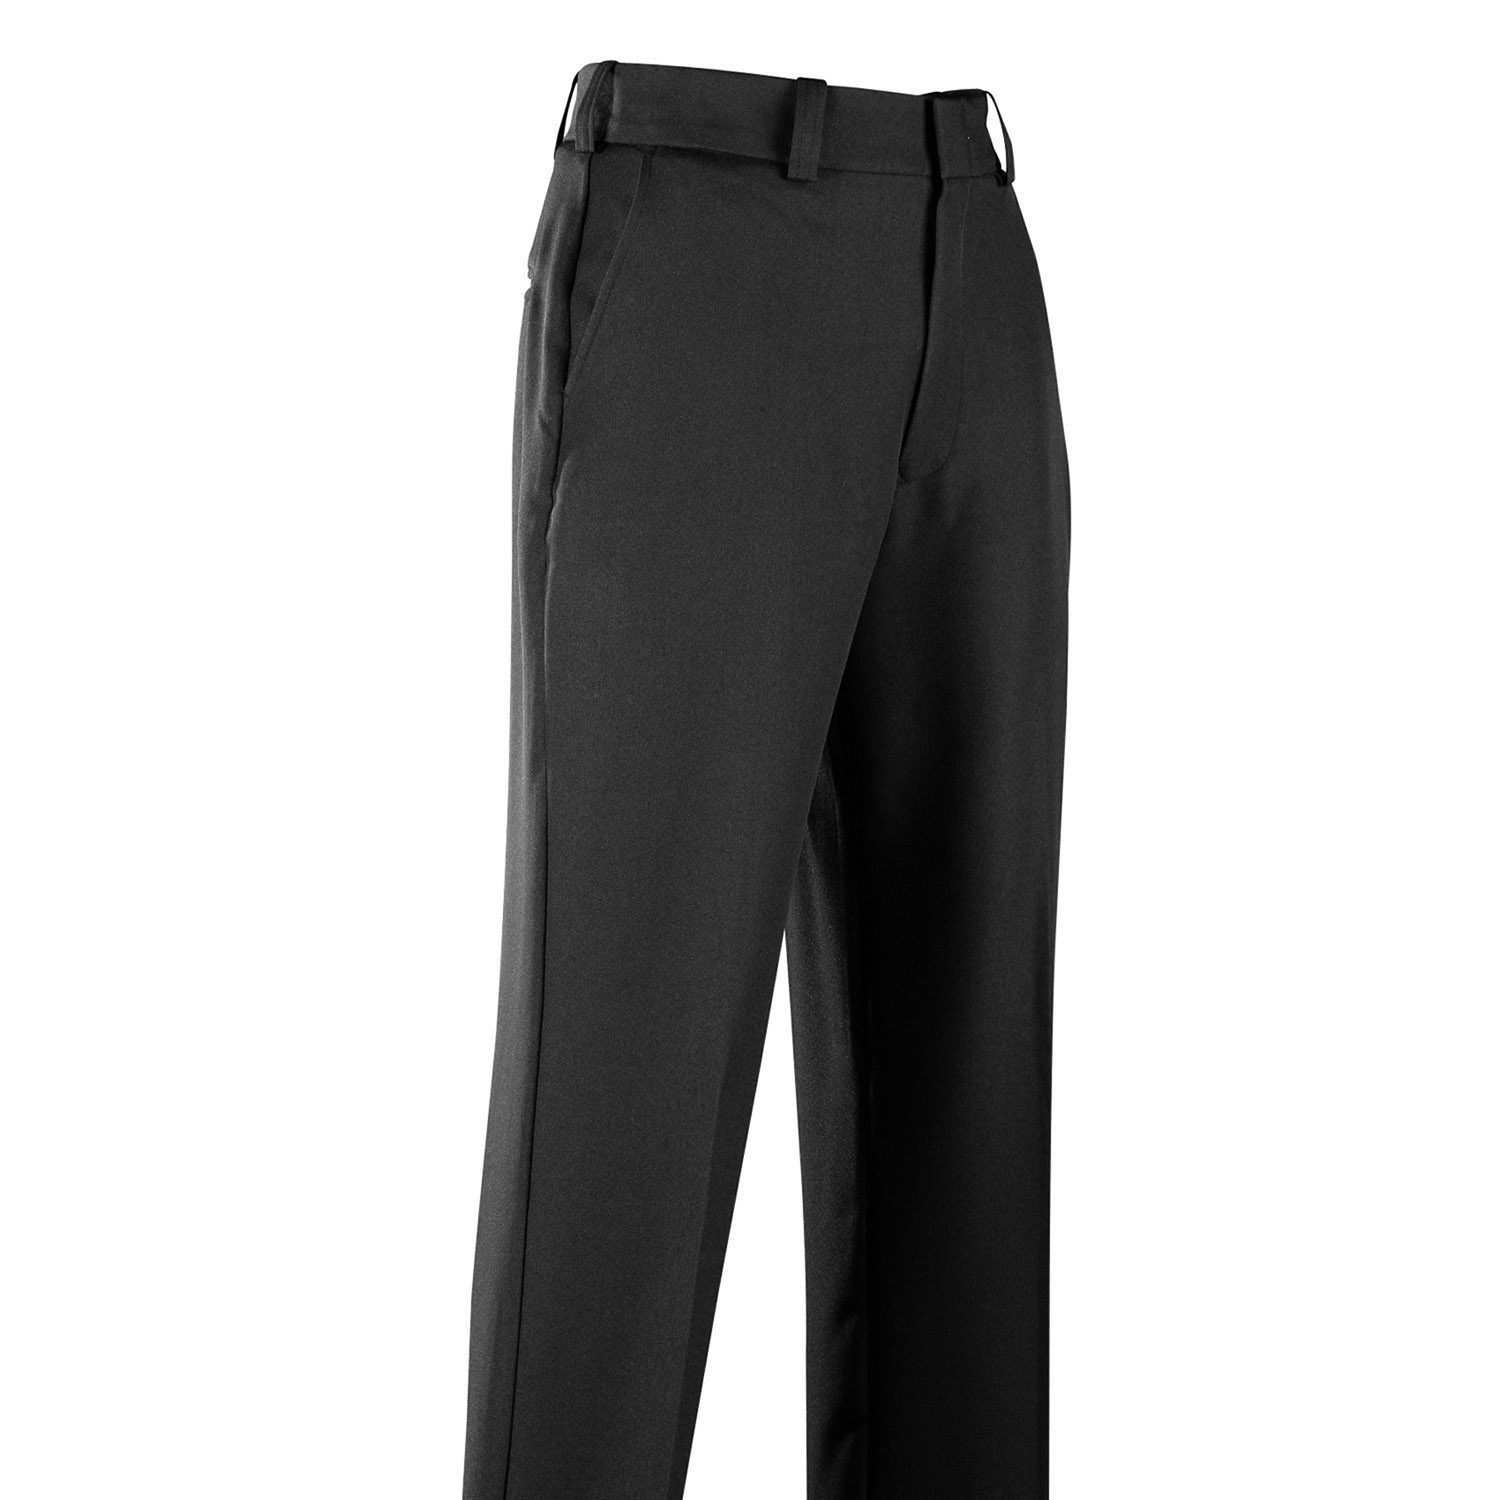 DutyPro Men's Polyester Pants